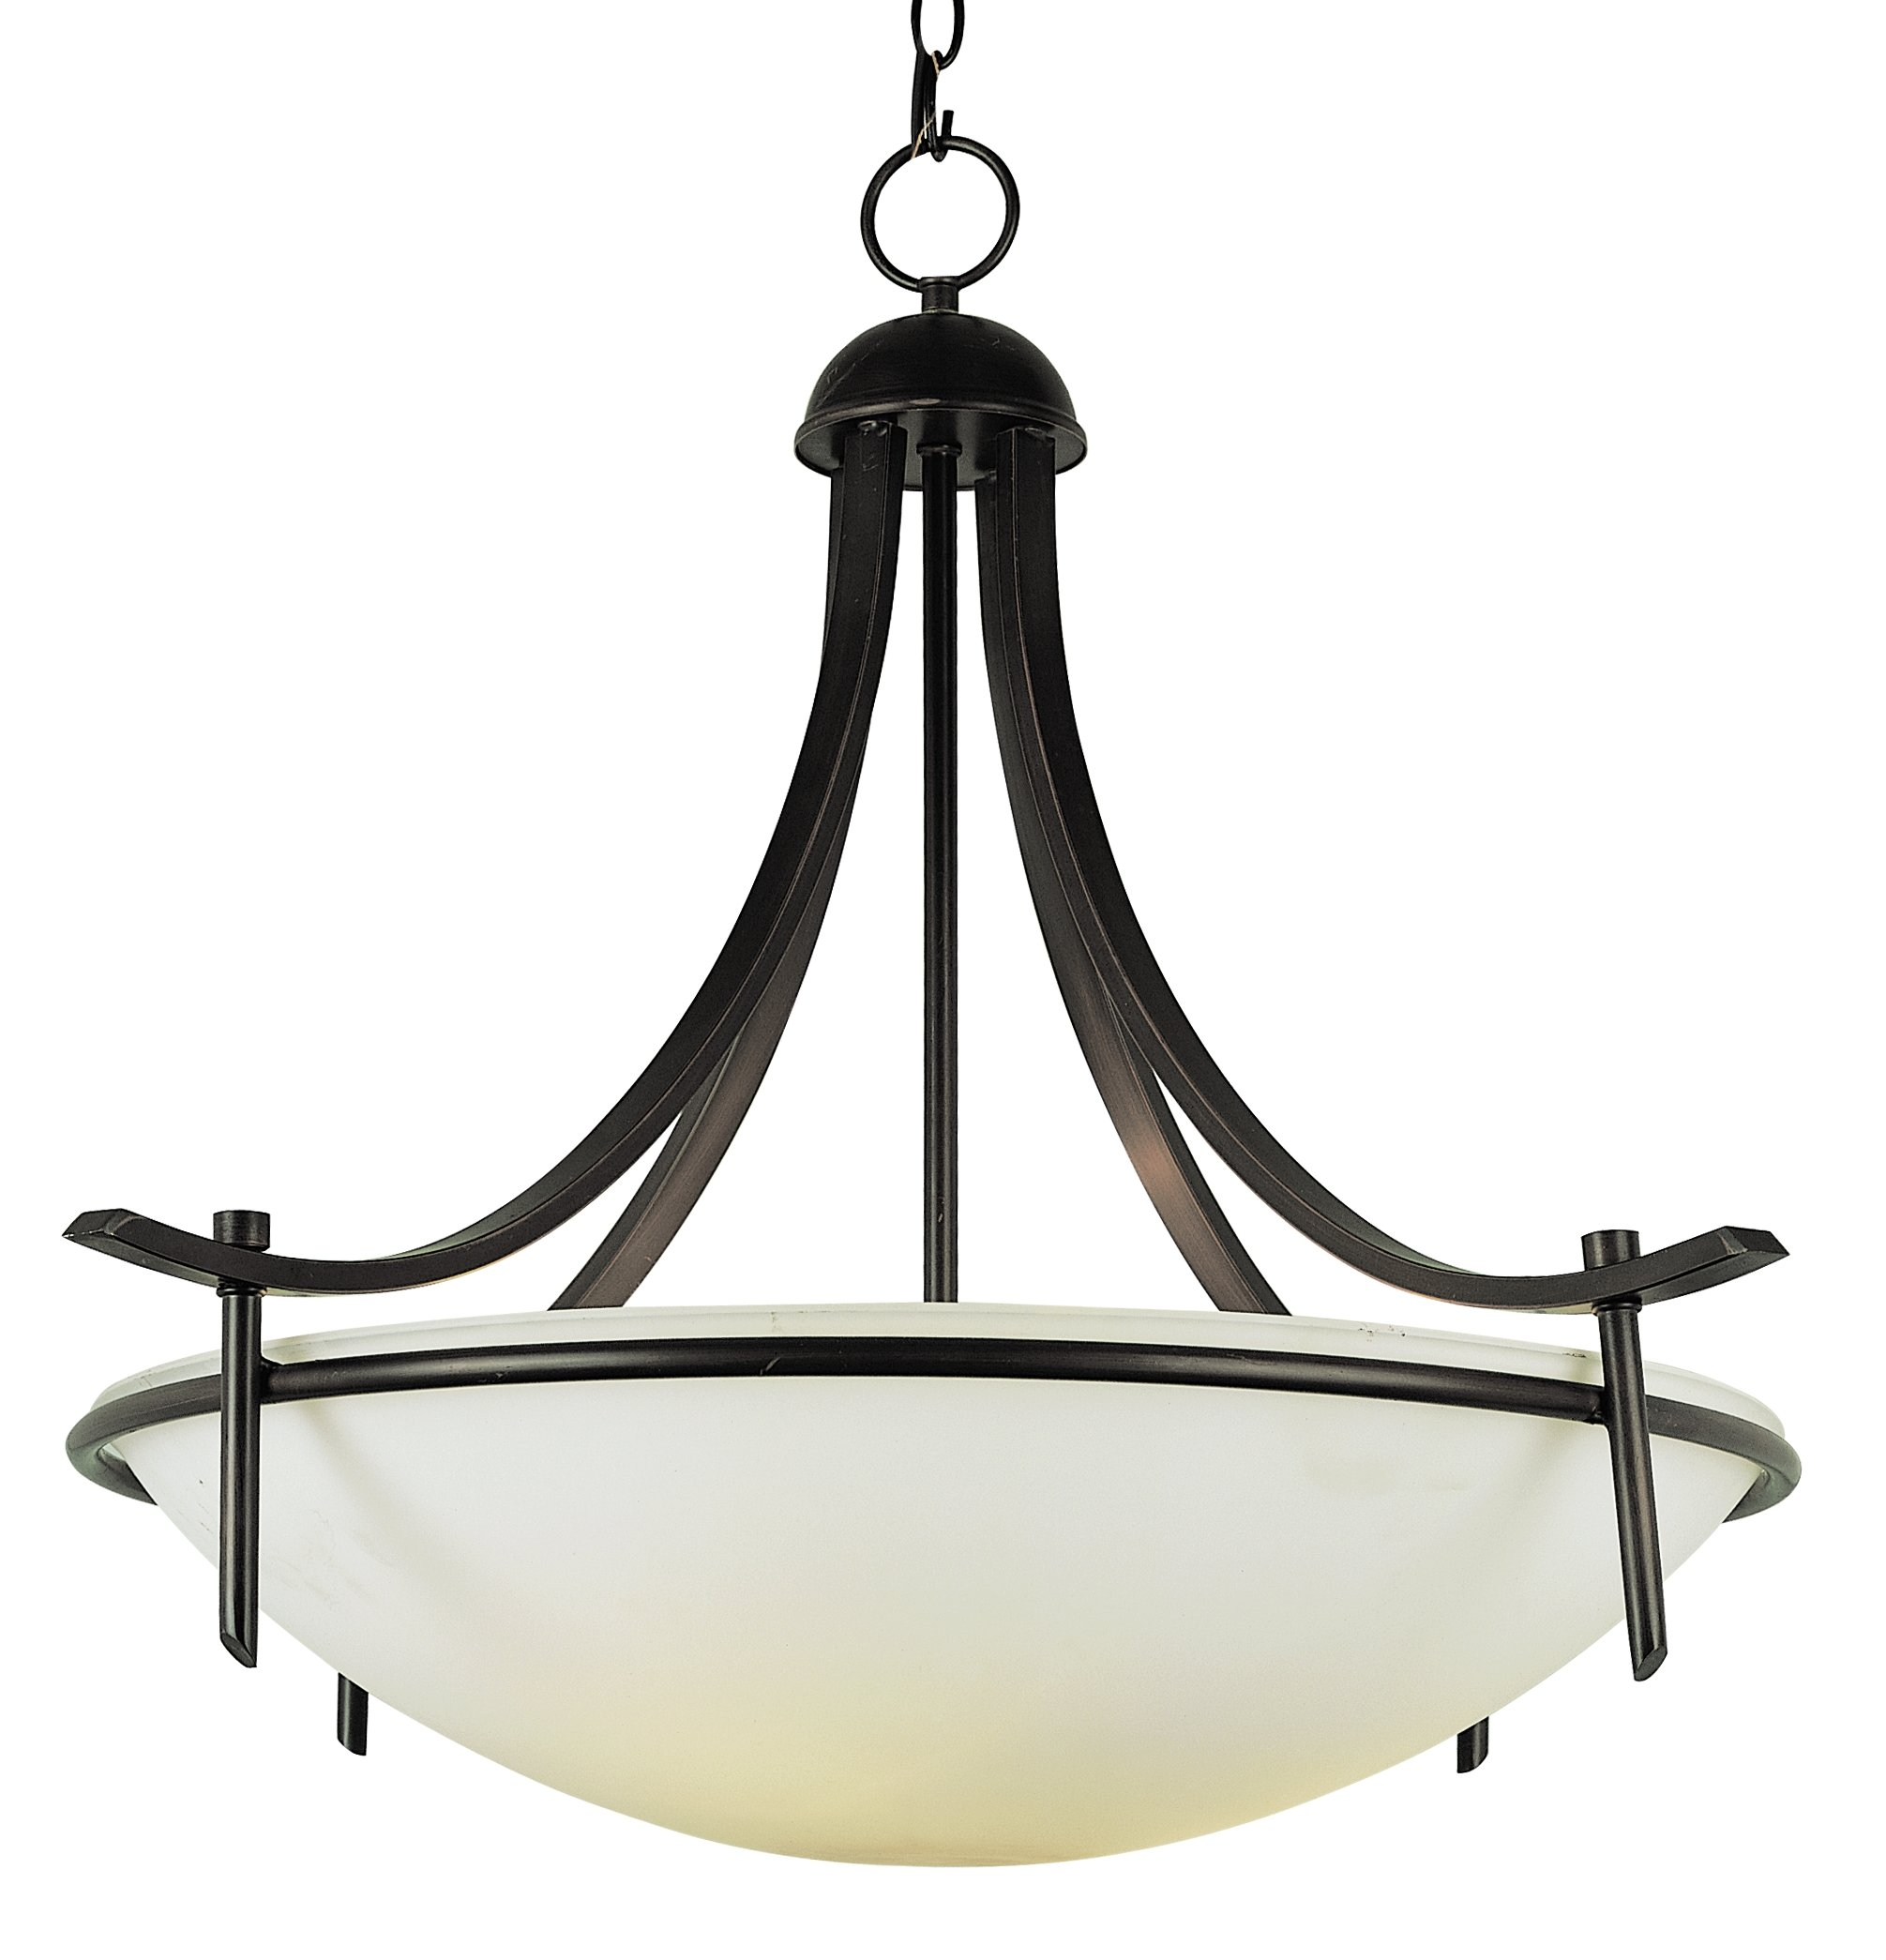 Bel Air Lighting Trans Globe Imports 8177 ROB Transitional Three Light Pendant from Vitalian Collection Dark Finish, 26.00 inches, Rubbed Oil Bronze